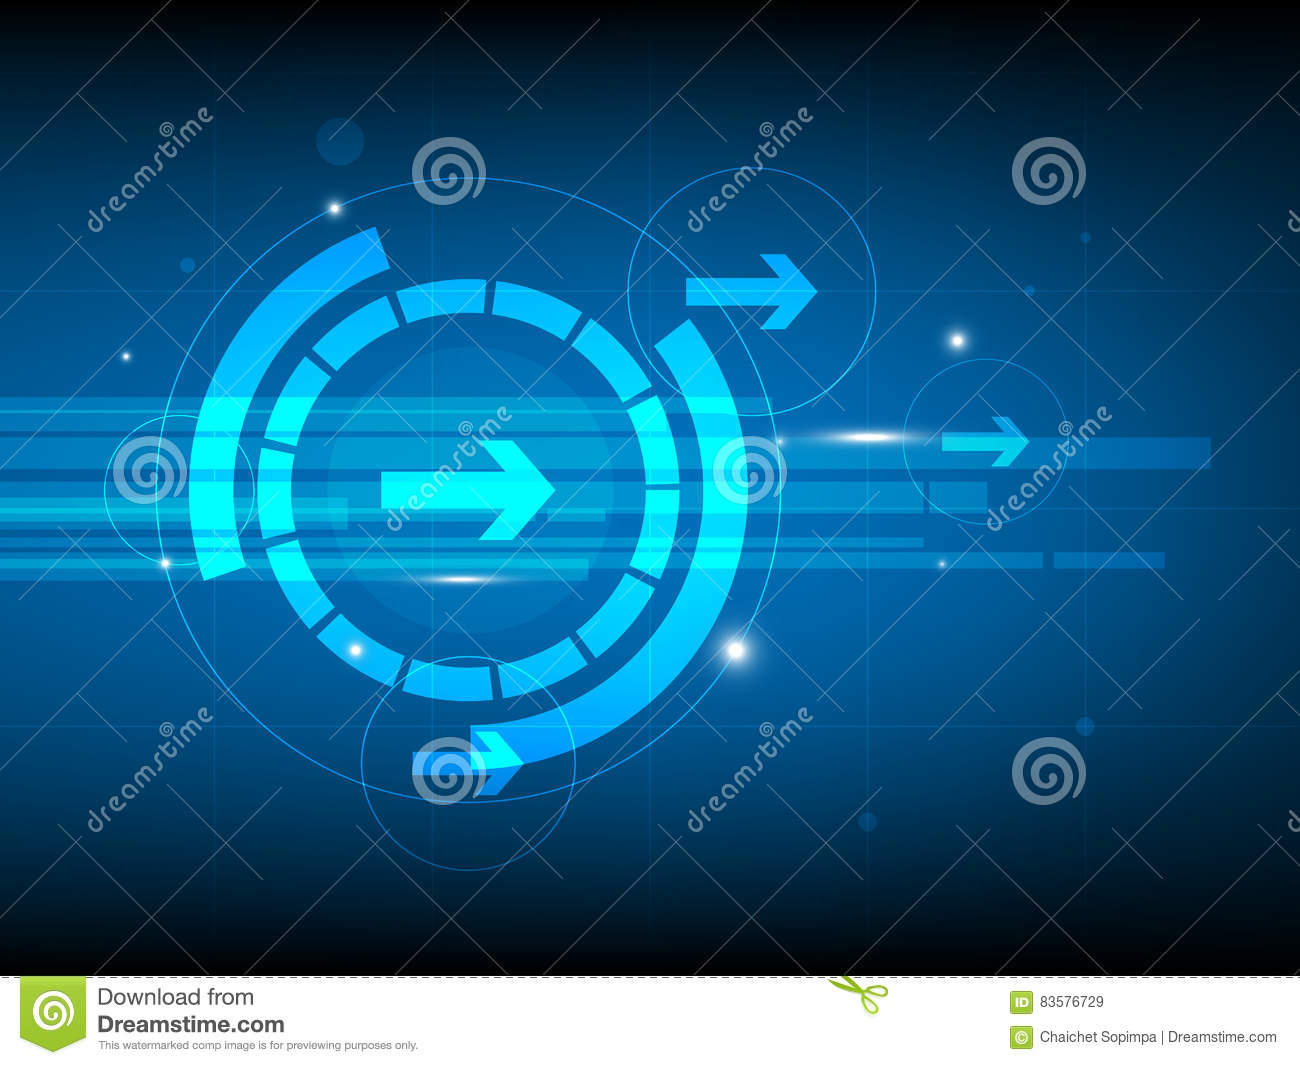 Abstract blue right arrow circle digital technology background, futuristic structure elements concept background